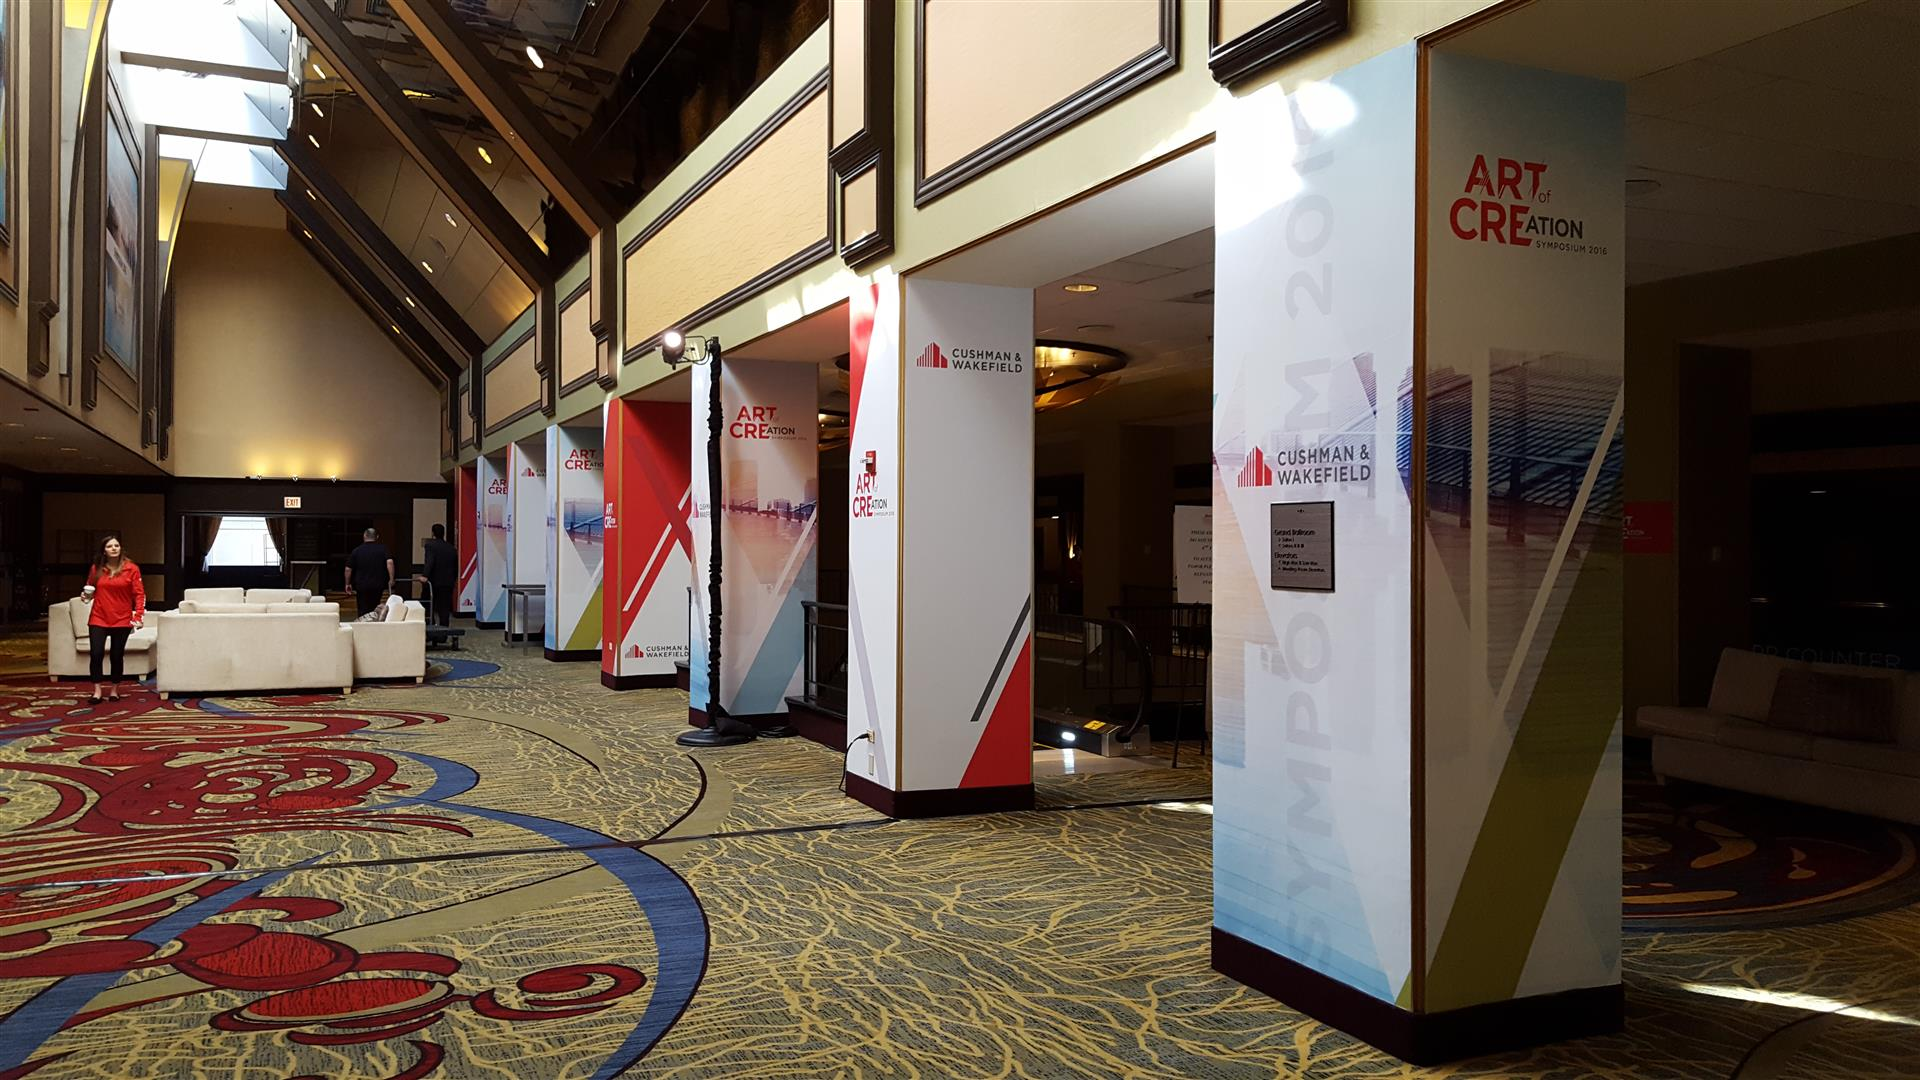 Cushman & Wakefield Convention Signs